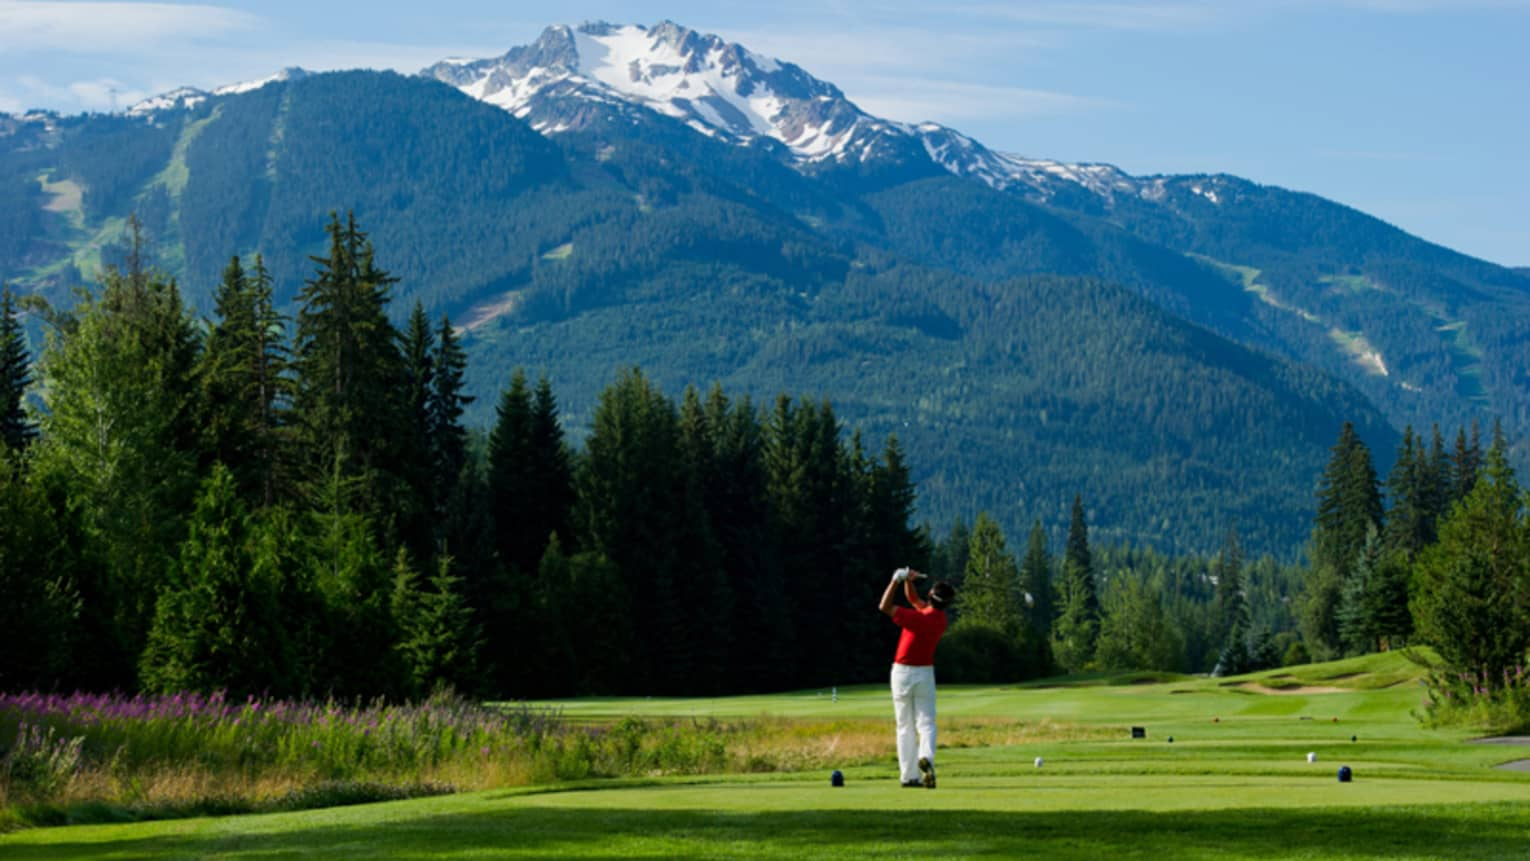 Man wearing red golf shirt swings club on green golf course surrounded by snow-capped mountains